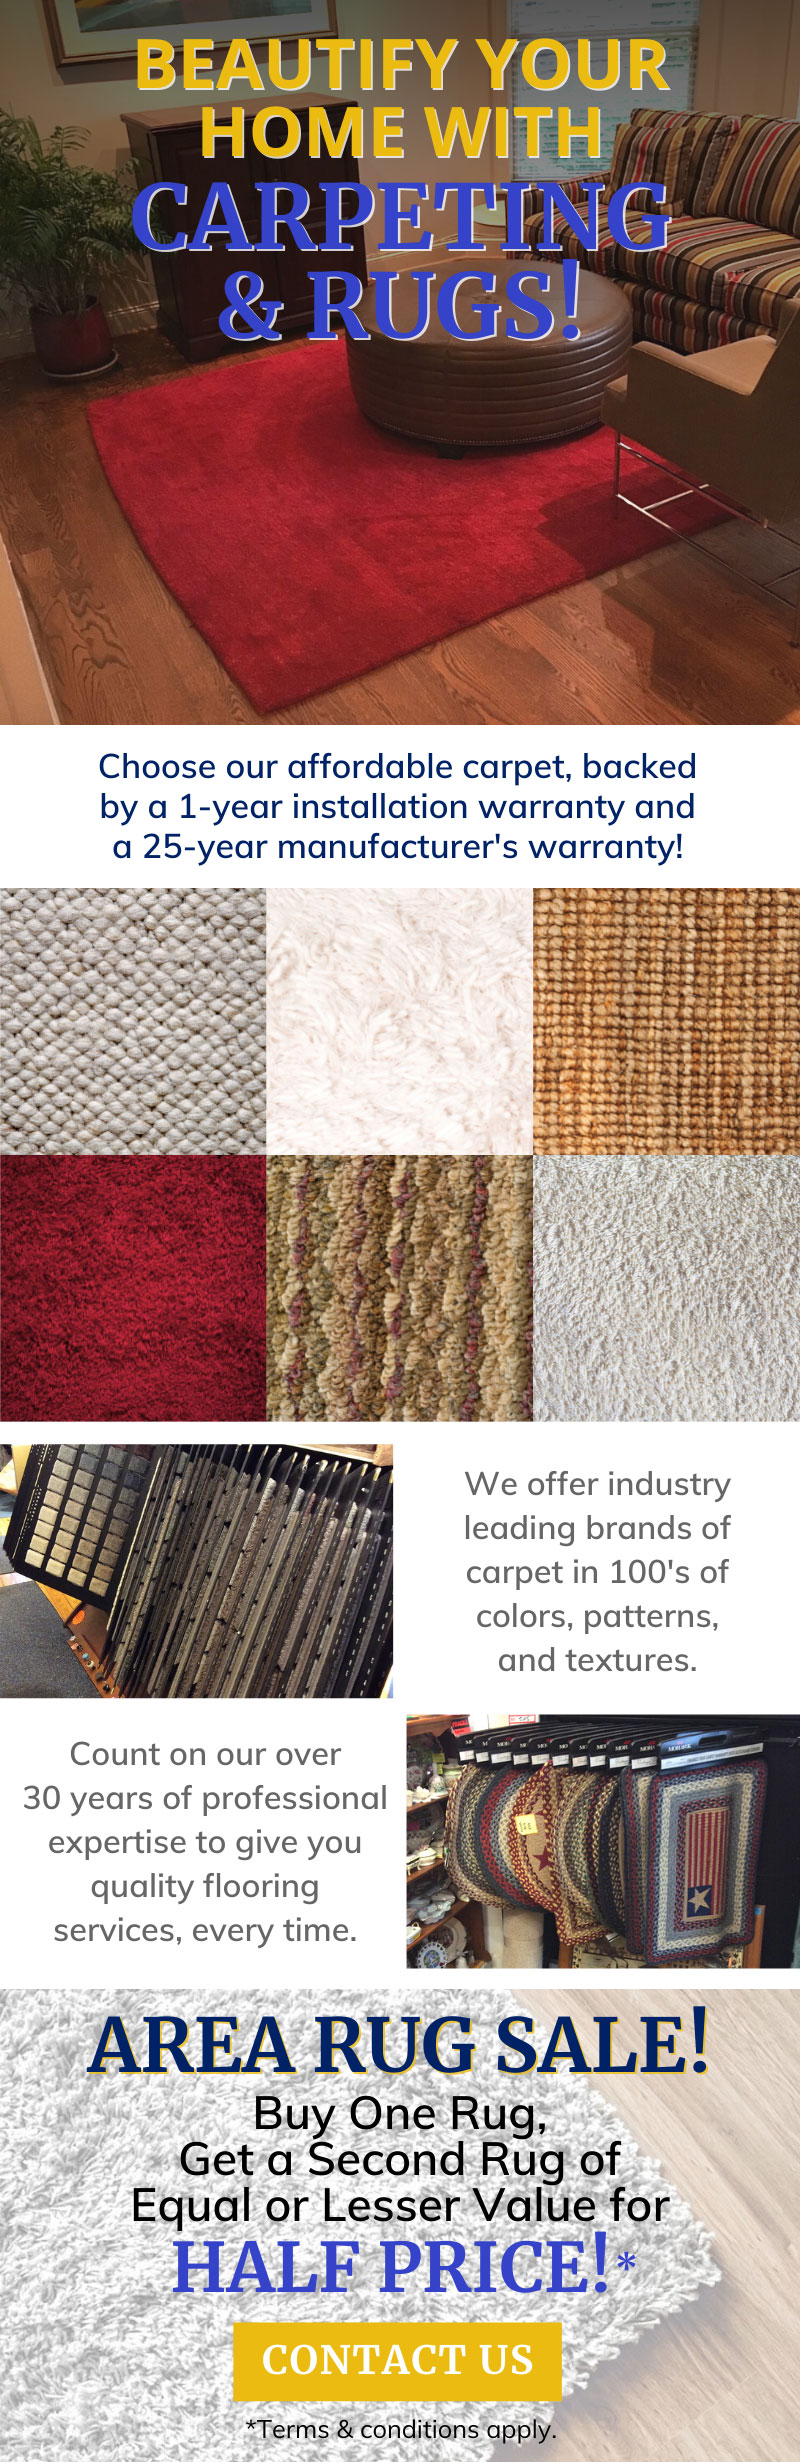 Check Out Our Area Rug Sale! 🎉 1